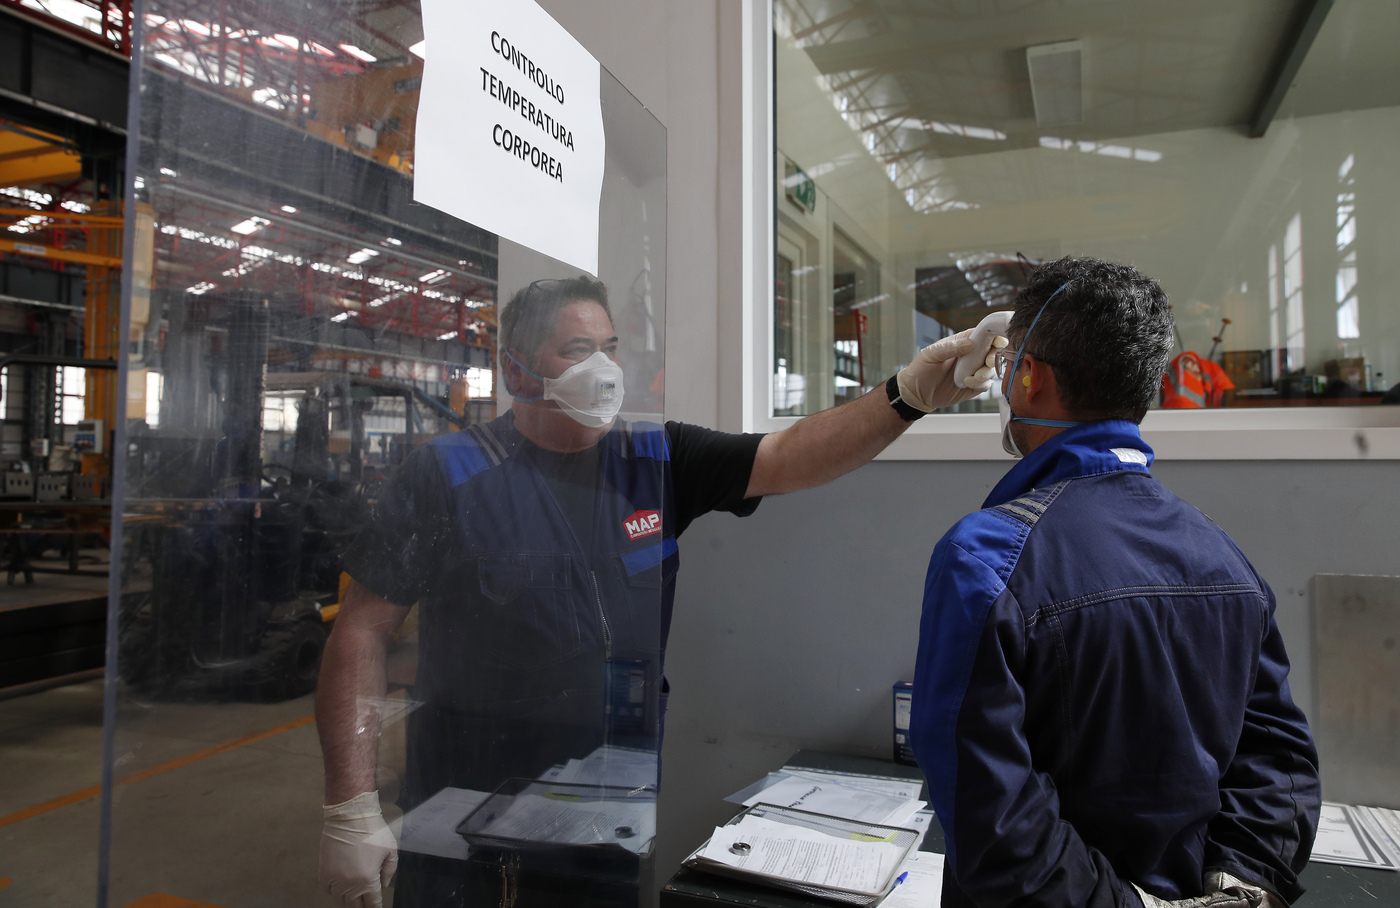 Body temperature is scanned at the entrance of MAP, a factory operating in design, manufacture and installation of steel structures for civil and industrial use, in Corsico, near Milan, Italy, Wednesday, May 6, 2020. Italy began stirring again after the coronavirus shutdown, with 4.4 million Italians able to return to work and restrictions on movement eased in the first European country to lock down in a bid to stem COVID-19 infections. (AP Photo/Antonio Calanni)